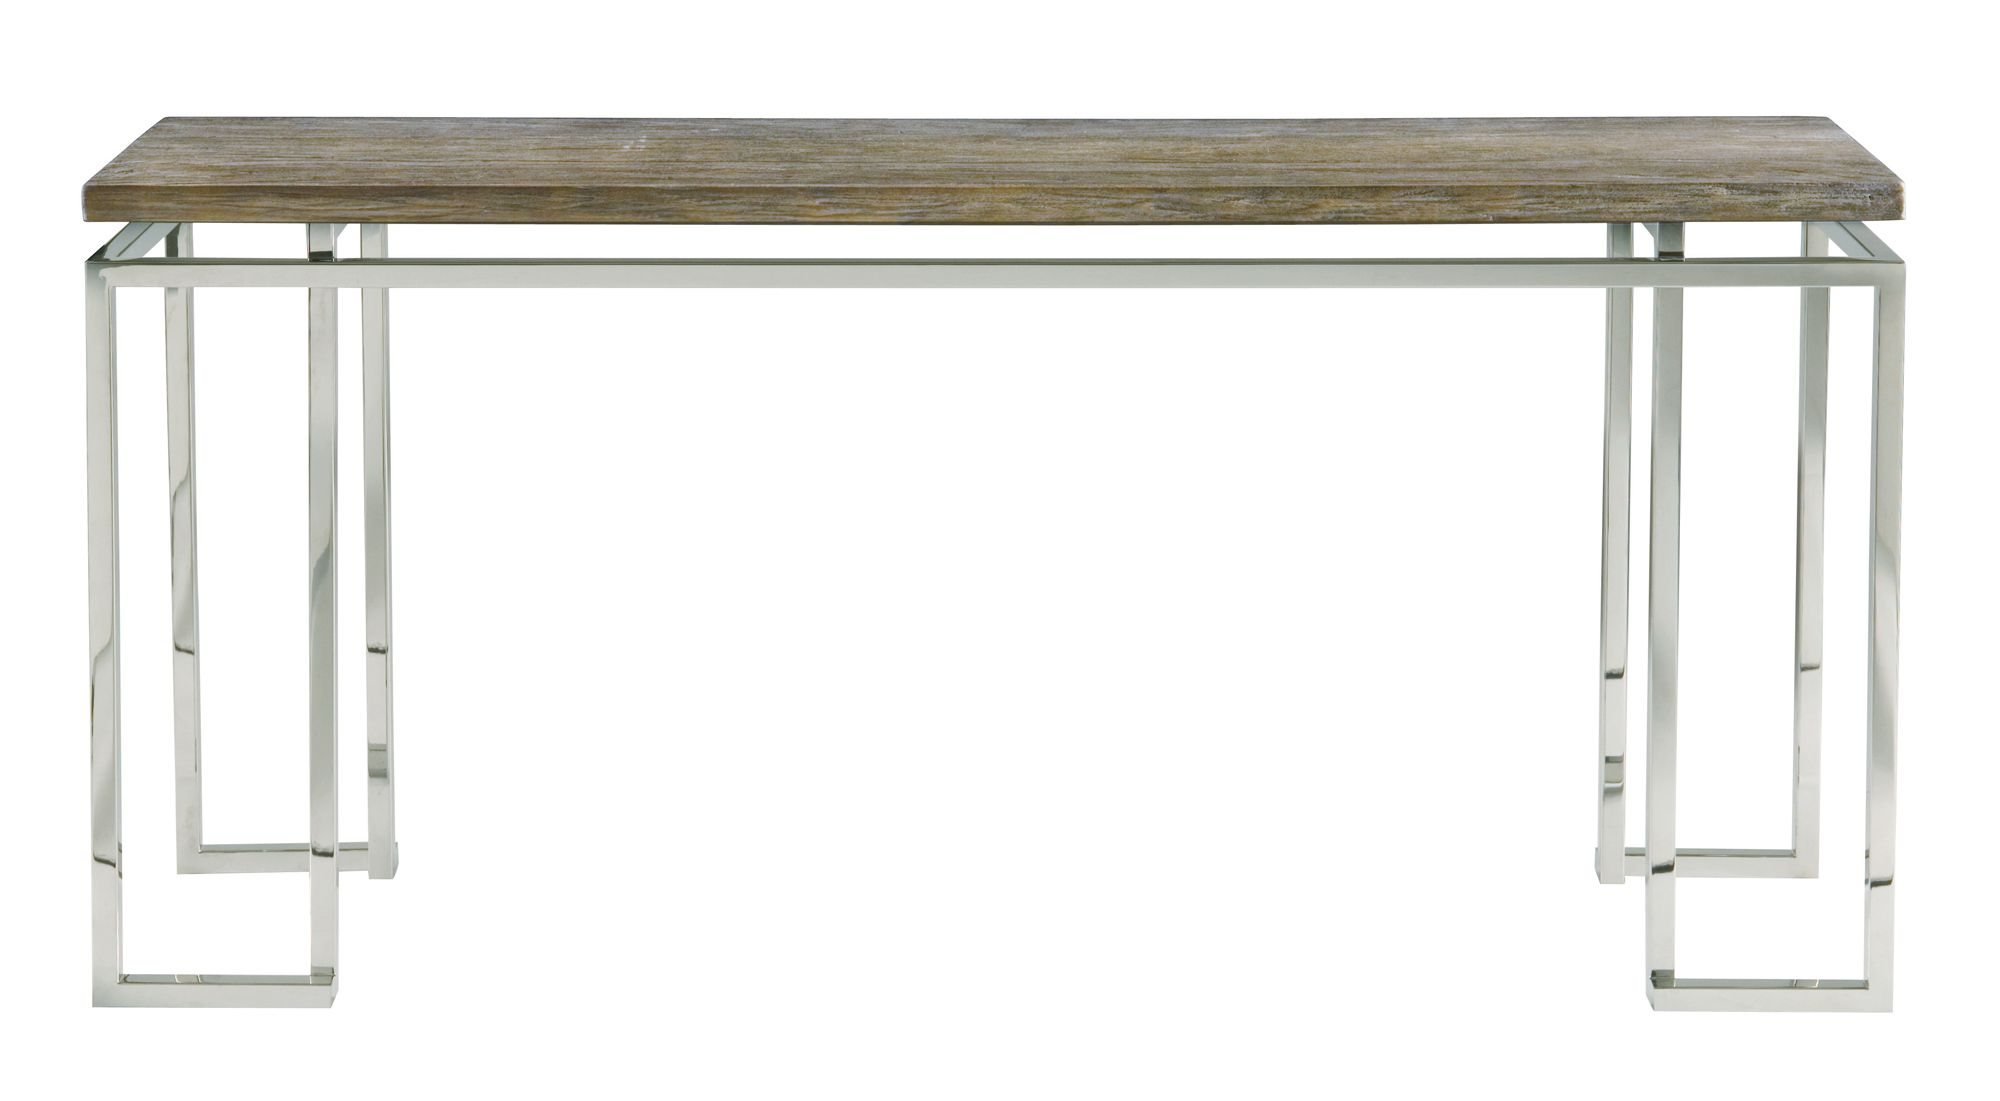 353 911t 353 911 Waverly Console Table Bernhardt W 68 D